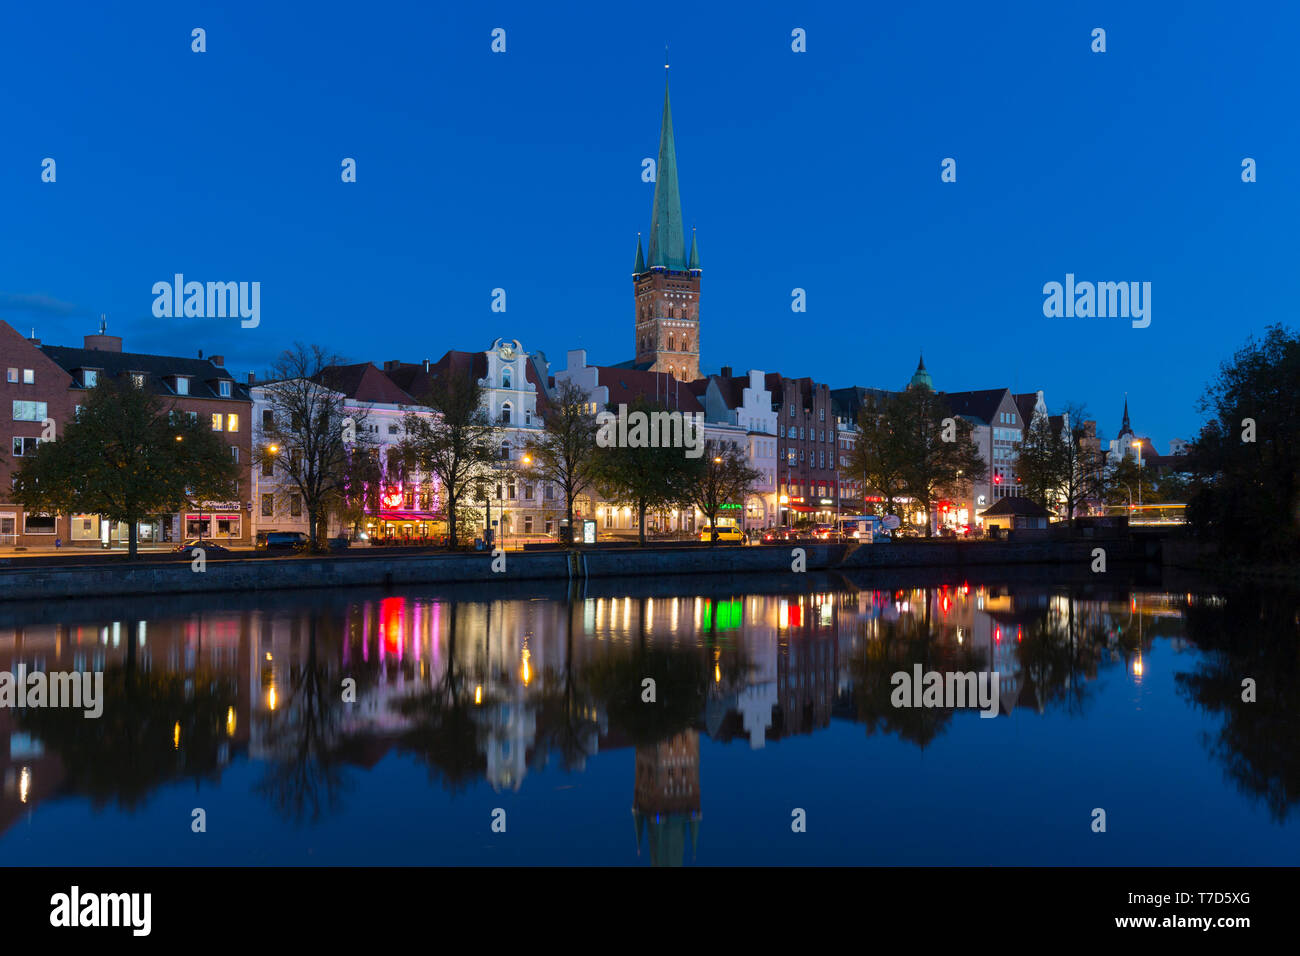 St. Petri Church / Petrikirche and historic houses along the river Trave at dusk at Hanseatic town Lübeck, Schleswig-Holstein, Germany - Stock Image